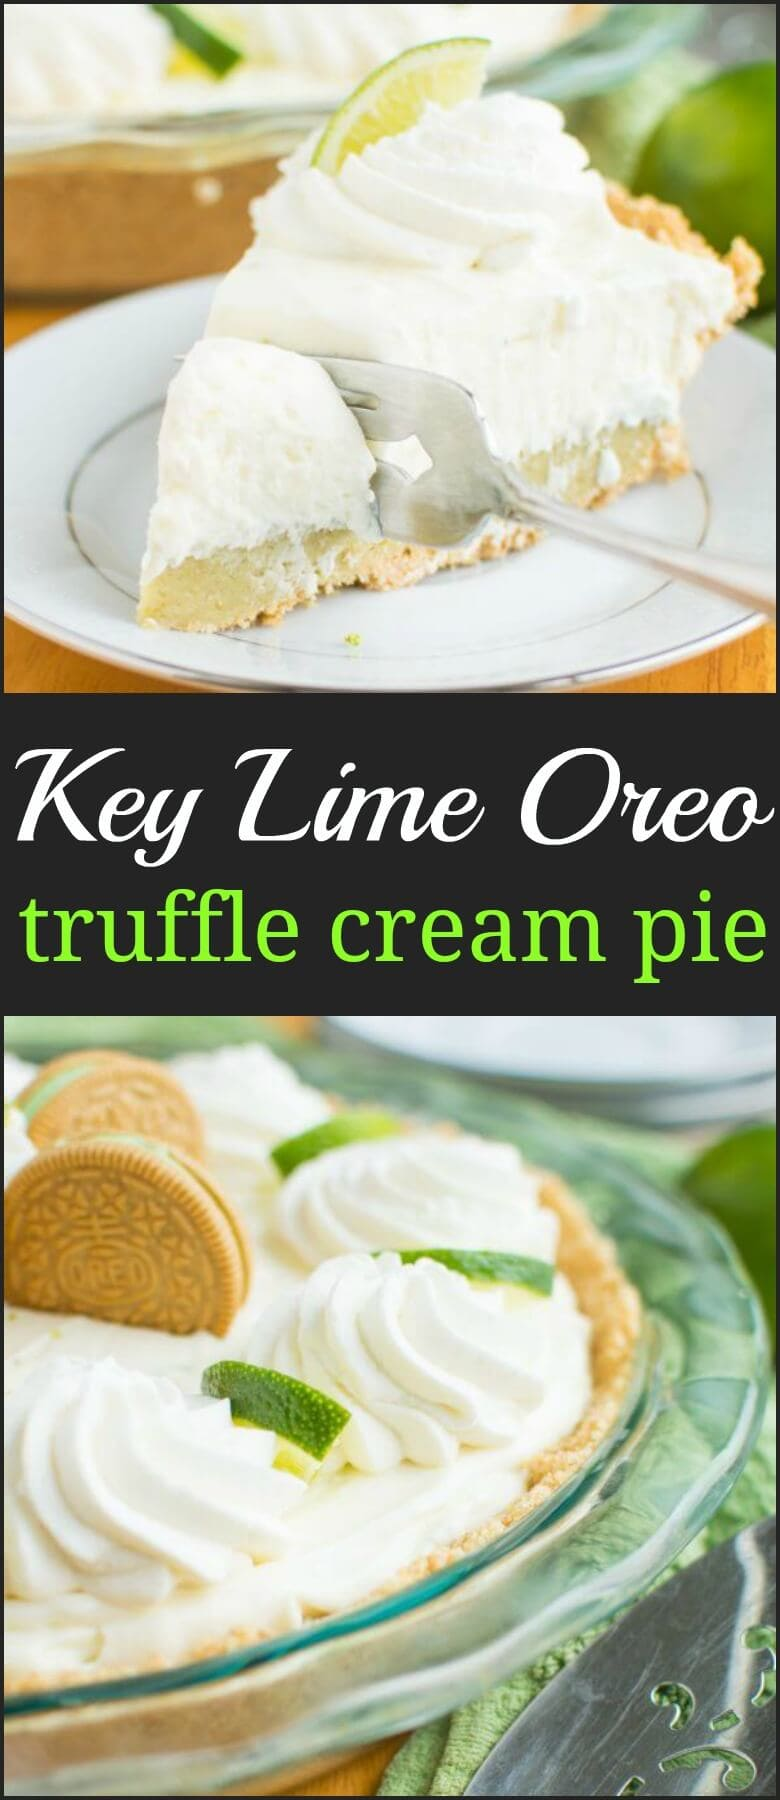 It's here! Key Lime Oreo Truffle Cream Pie. A no-bake pie that starts with a graham cracker crust filled with a layer of rich Key Lime Oreo truffle filling and a layer of tangy white chocolatey mousse filling!